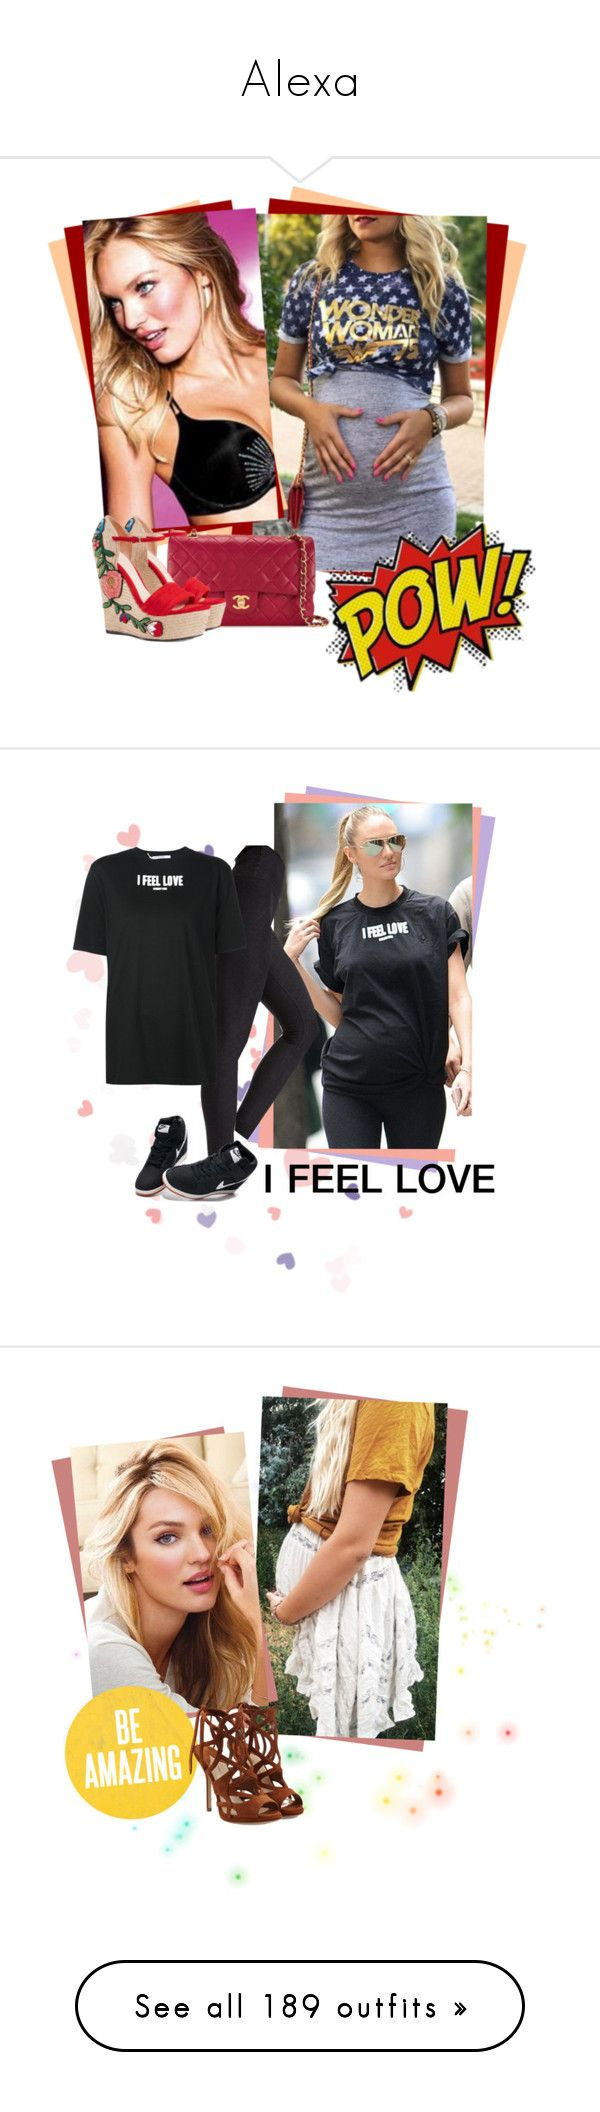 """""""Alexa"""" by krisbie ❤ liked on Polyvore featuring Chanel, Gucci, Victoria's Secret, Givenchy, NIKE, Paul Andrew, Christian Dior, Jimmy Choo, Aquazzura and Christian Louboutin"""